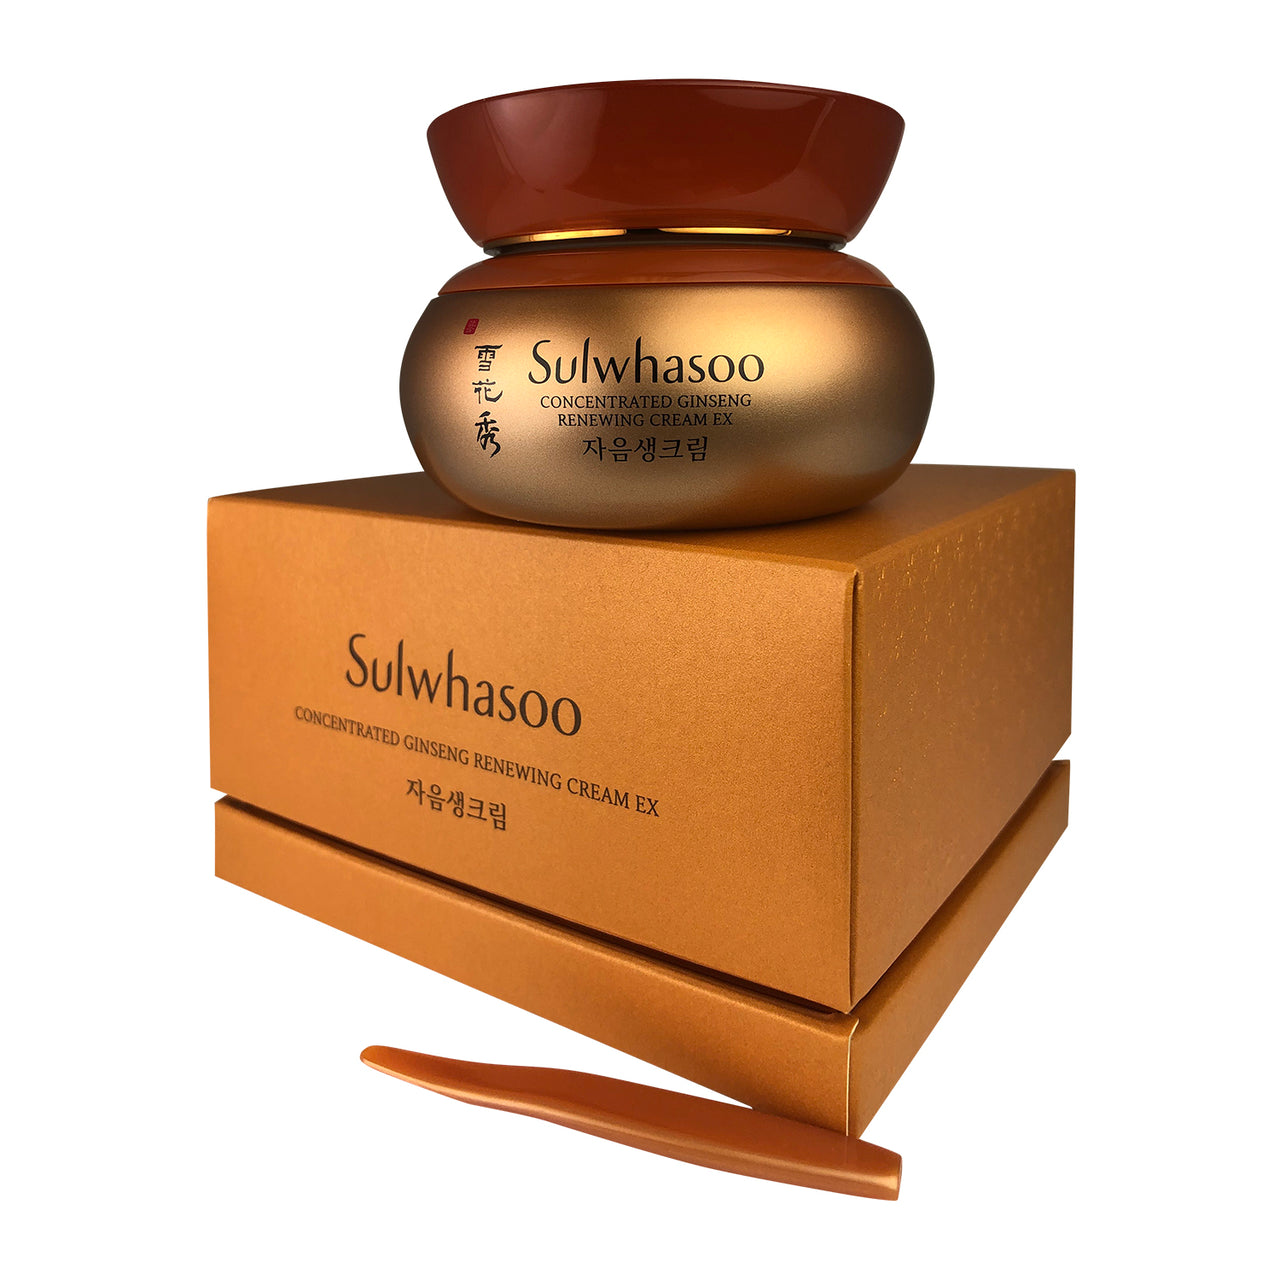 Sulwhasoo Concentrated Ginseng Renewing Face Cream EX  2 oz